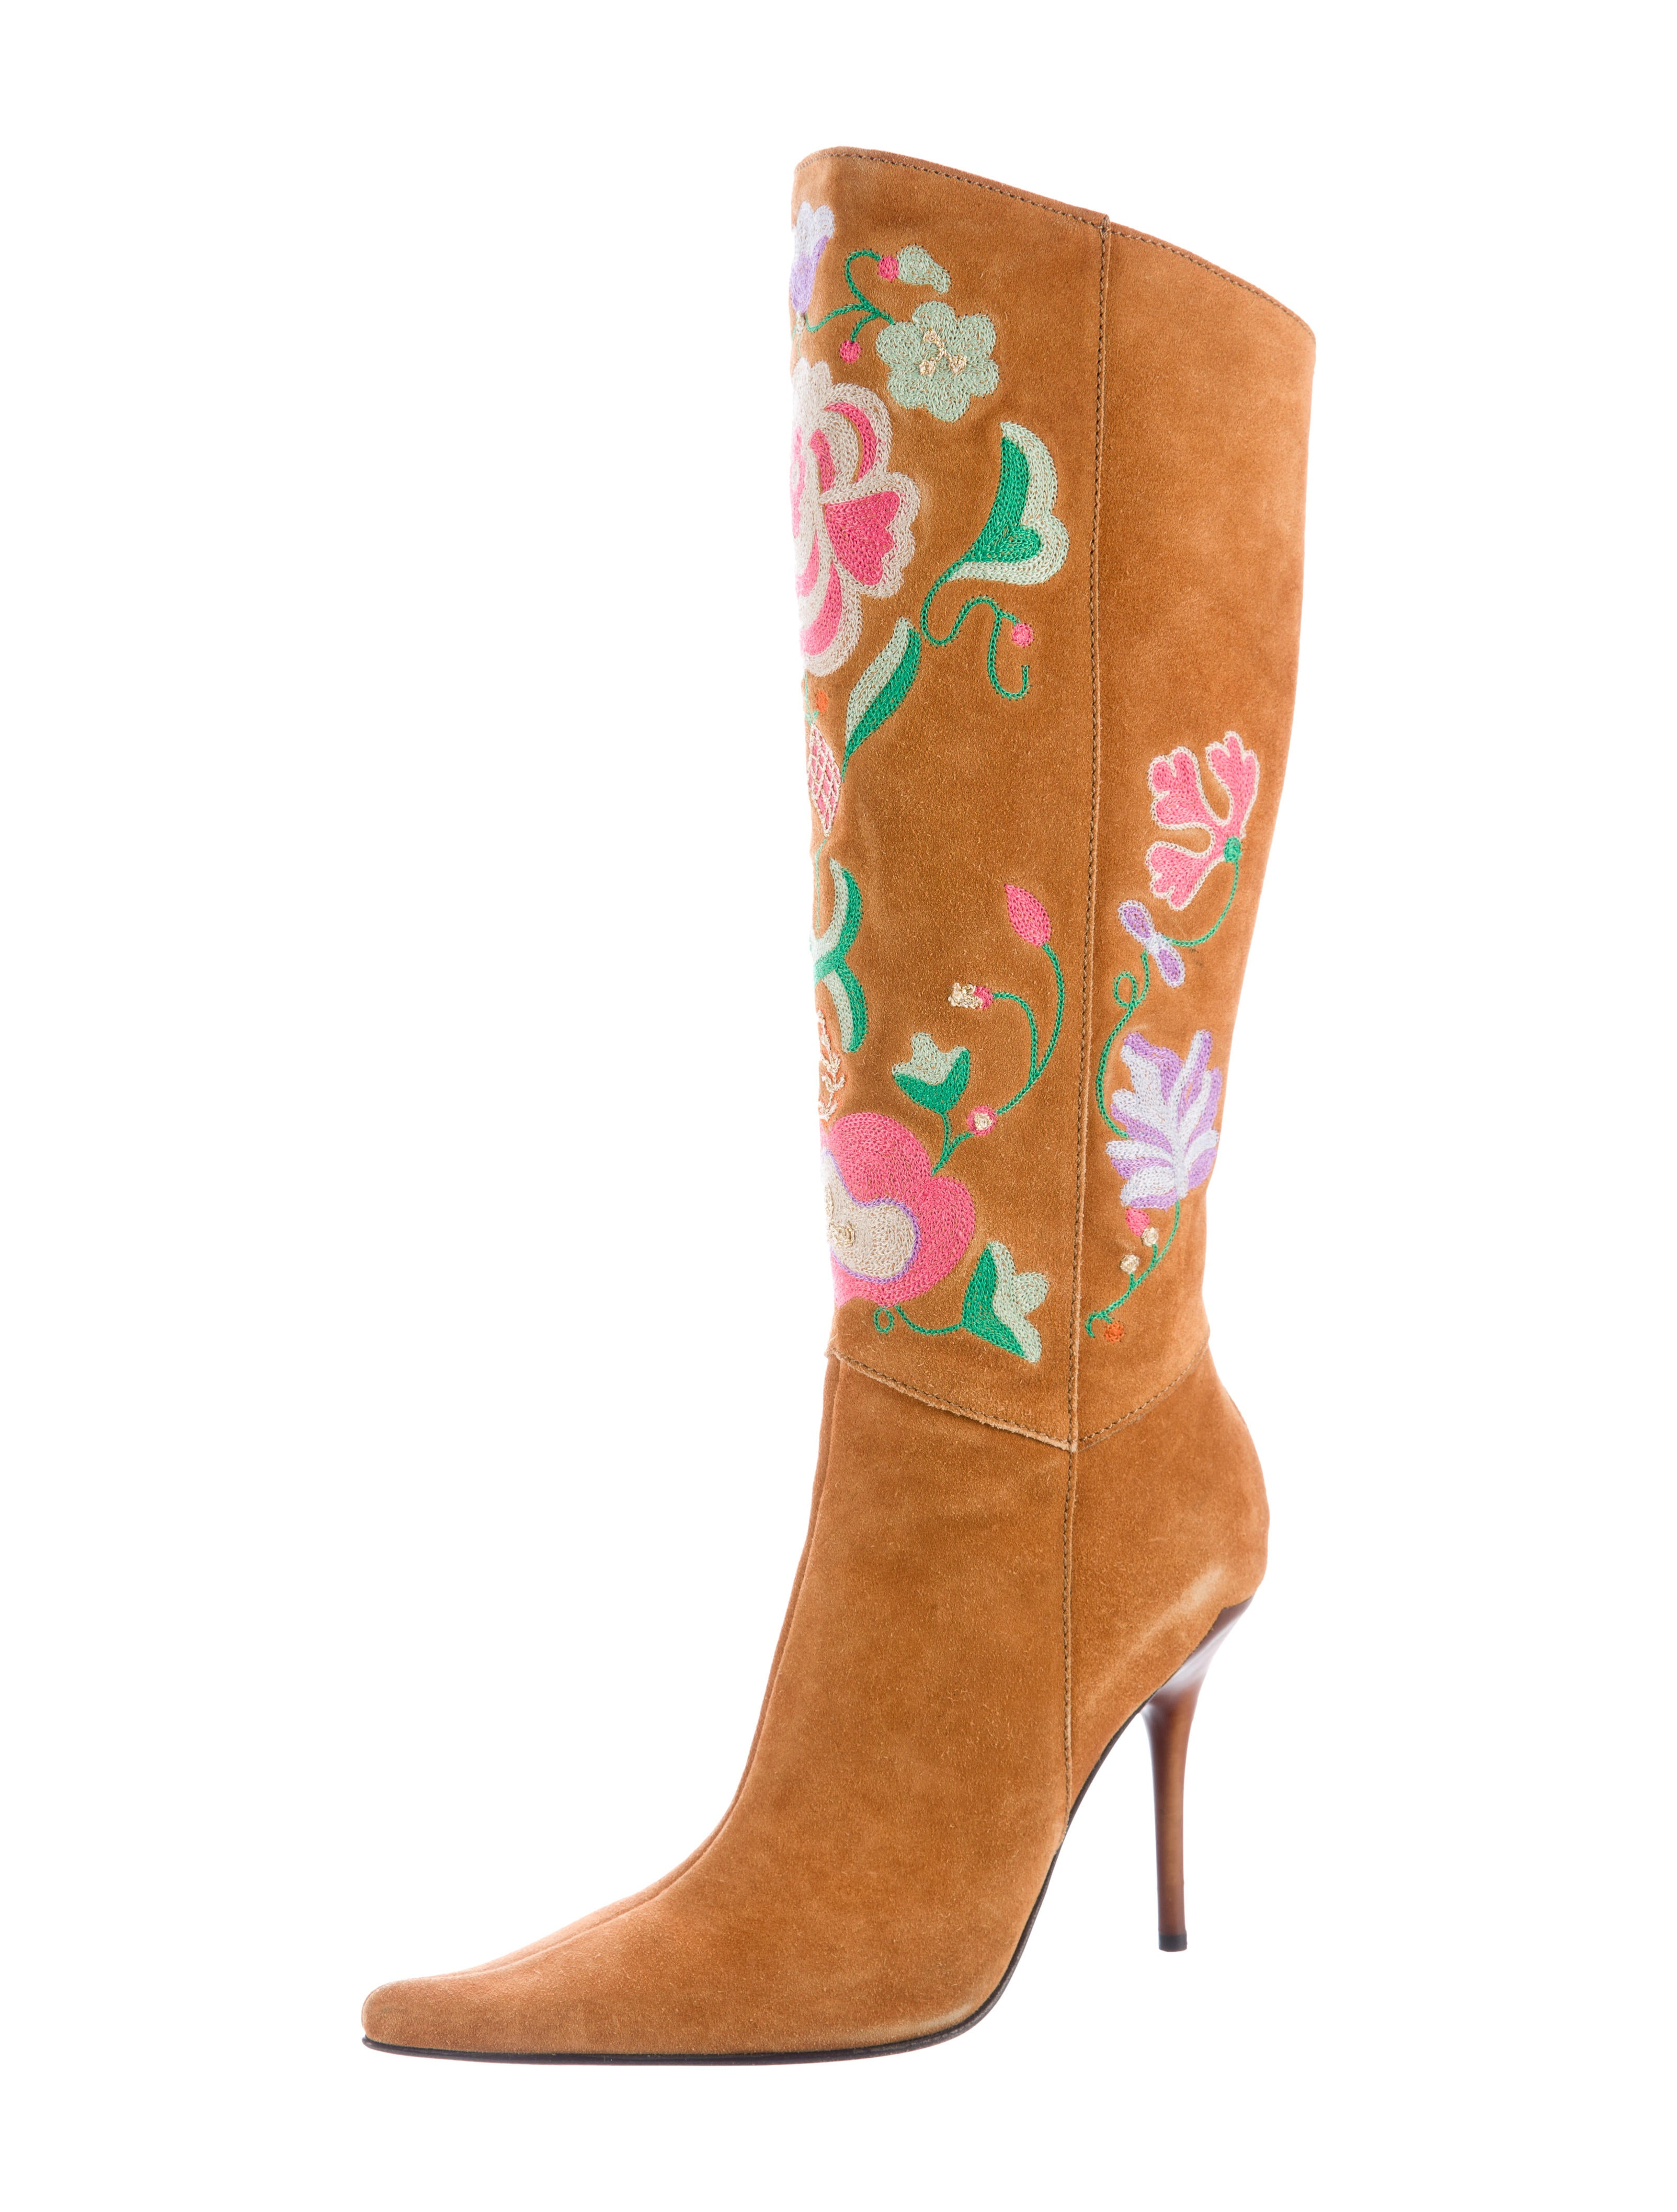 casadei embroidered suede boots shoes cei22797 the